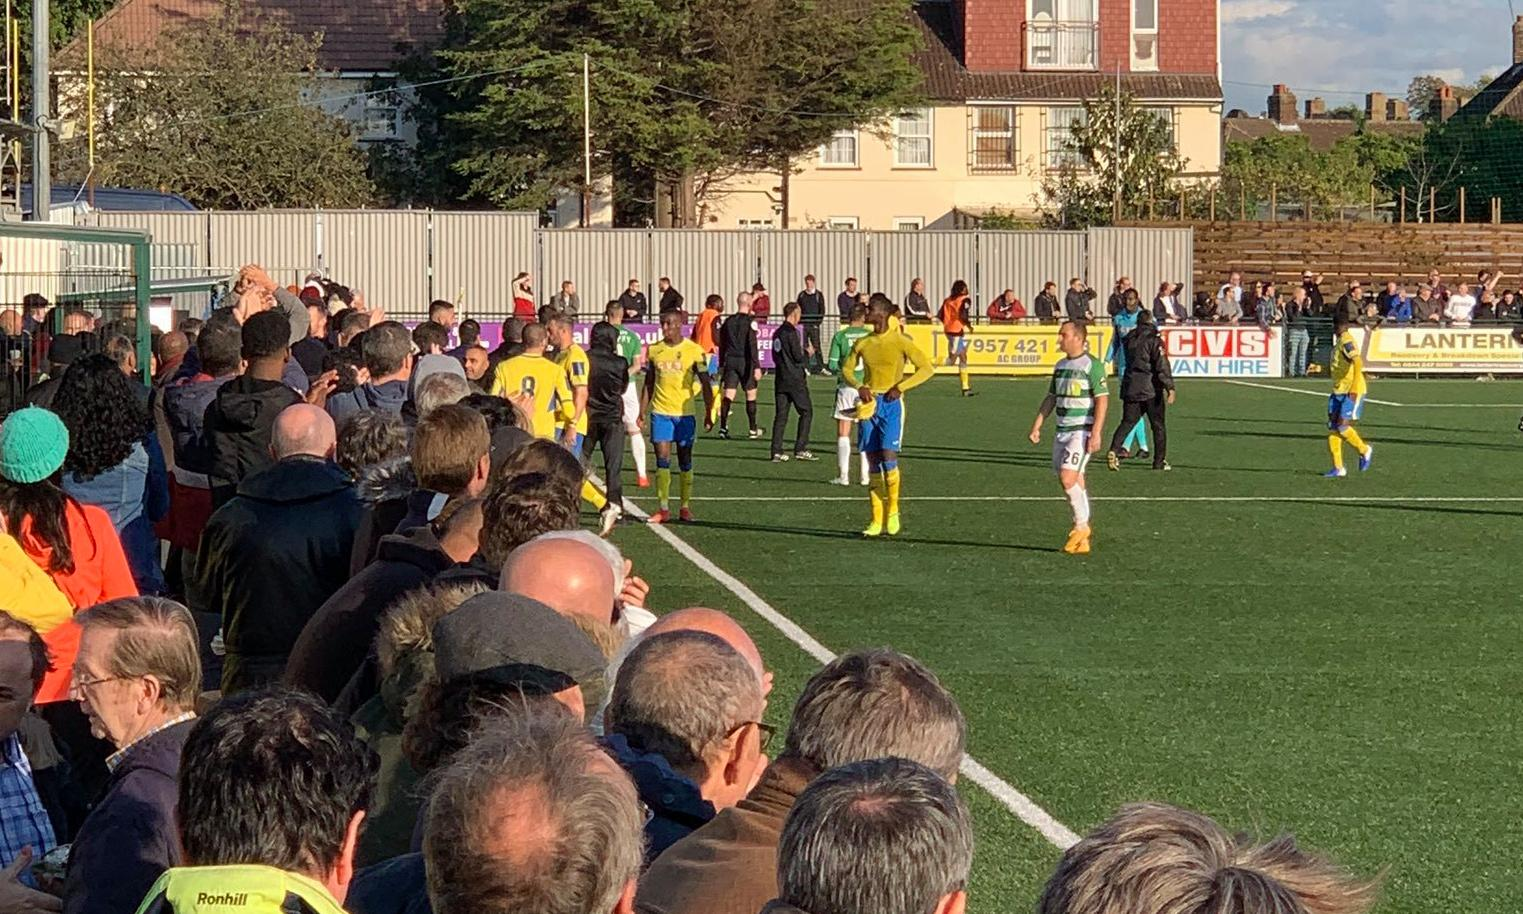 Haringey is the perfect place for football to take a stand against racism